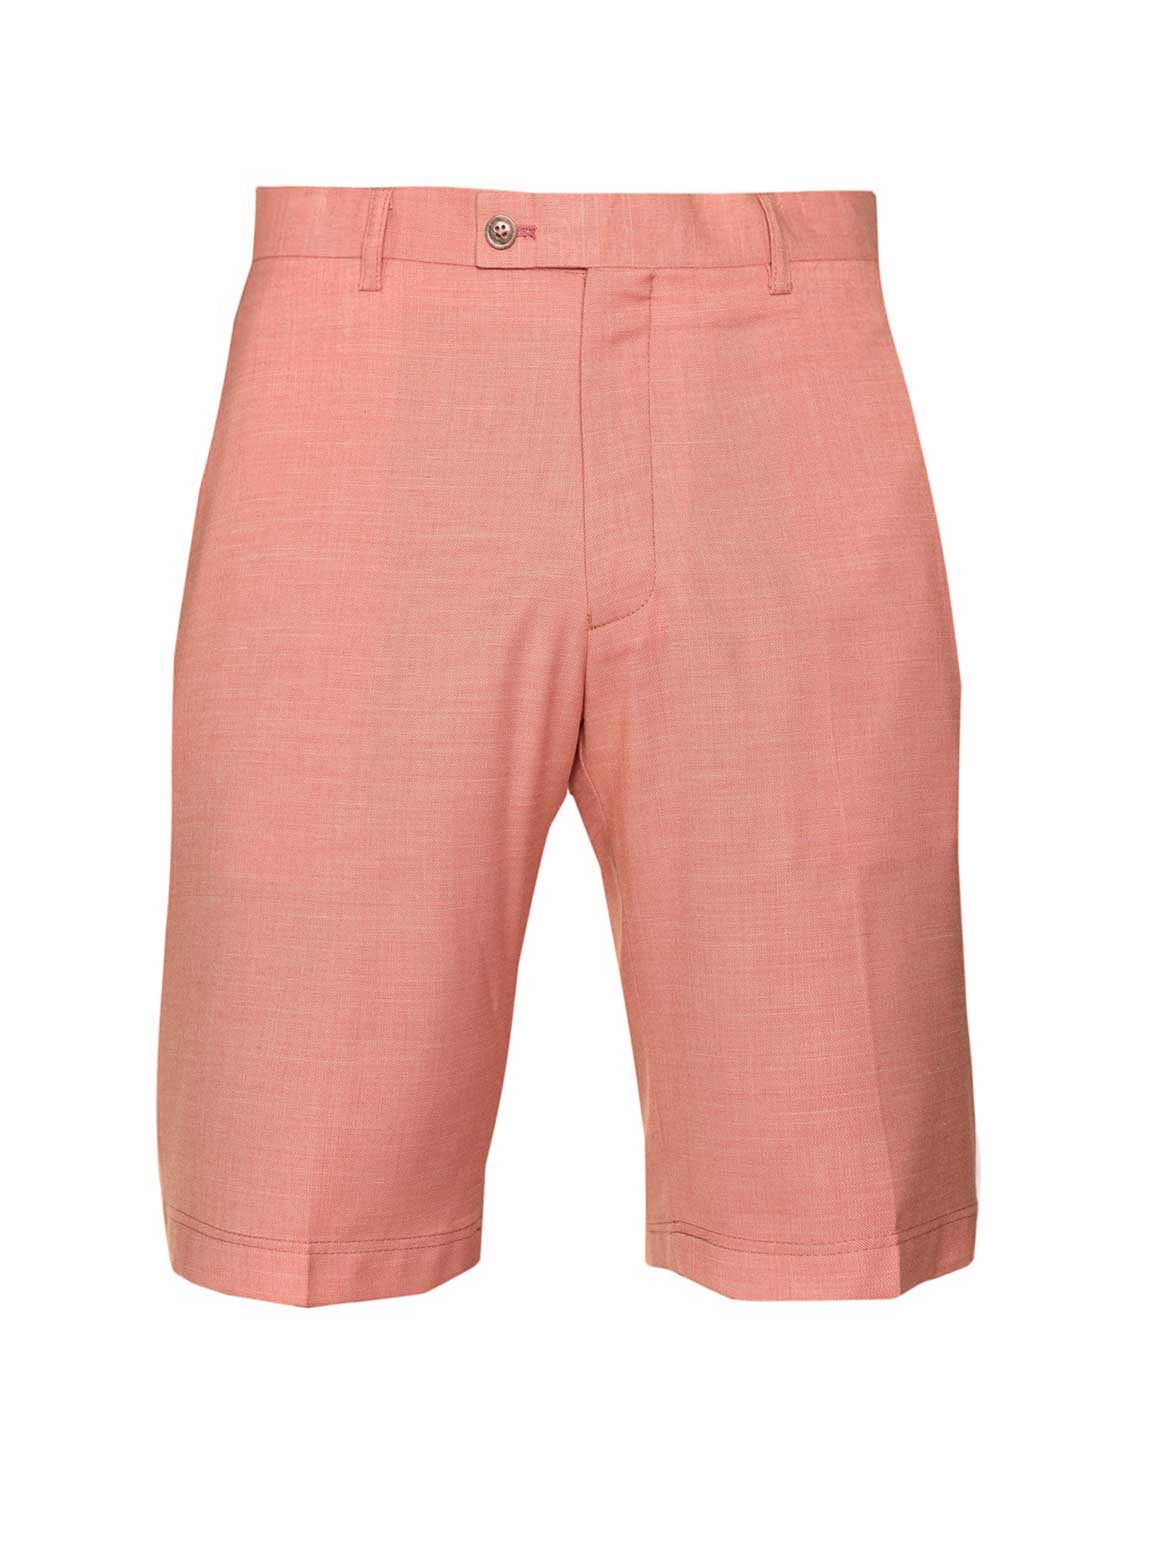 Fairview Shorts - Slim - Peach